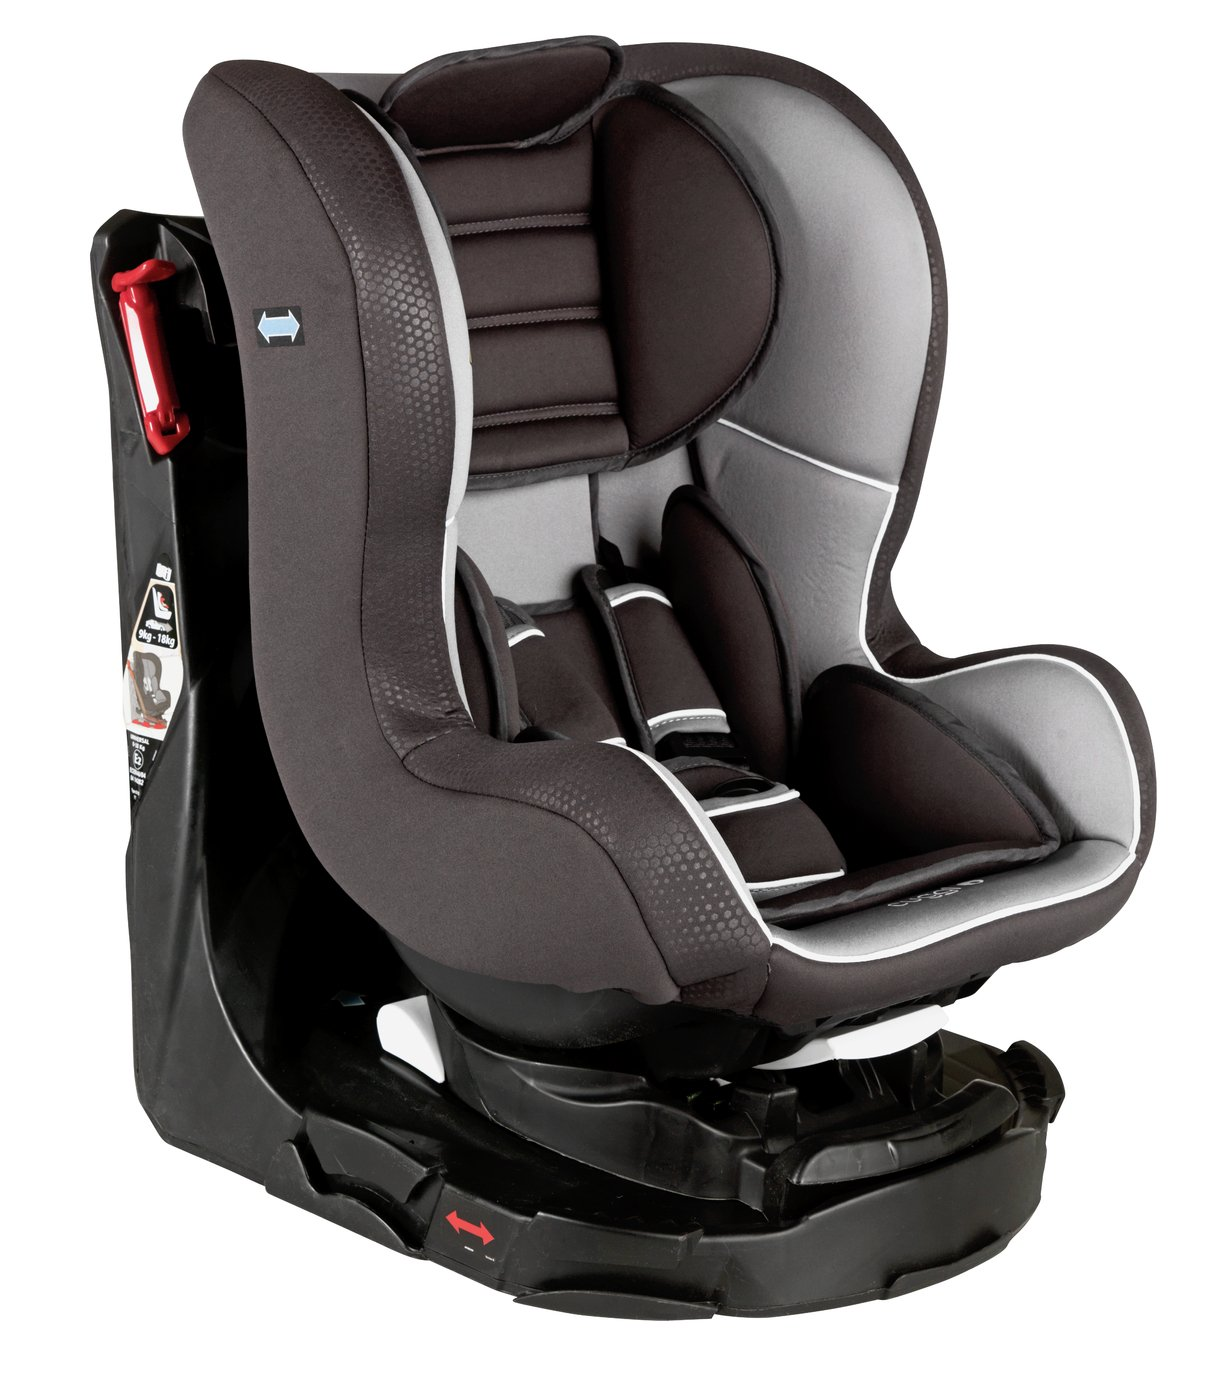 review of cuggl owl spin 0 1 2 car seat. Black Bedroom Furniture Sets. Home Design Ideas